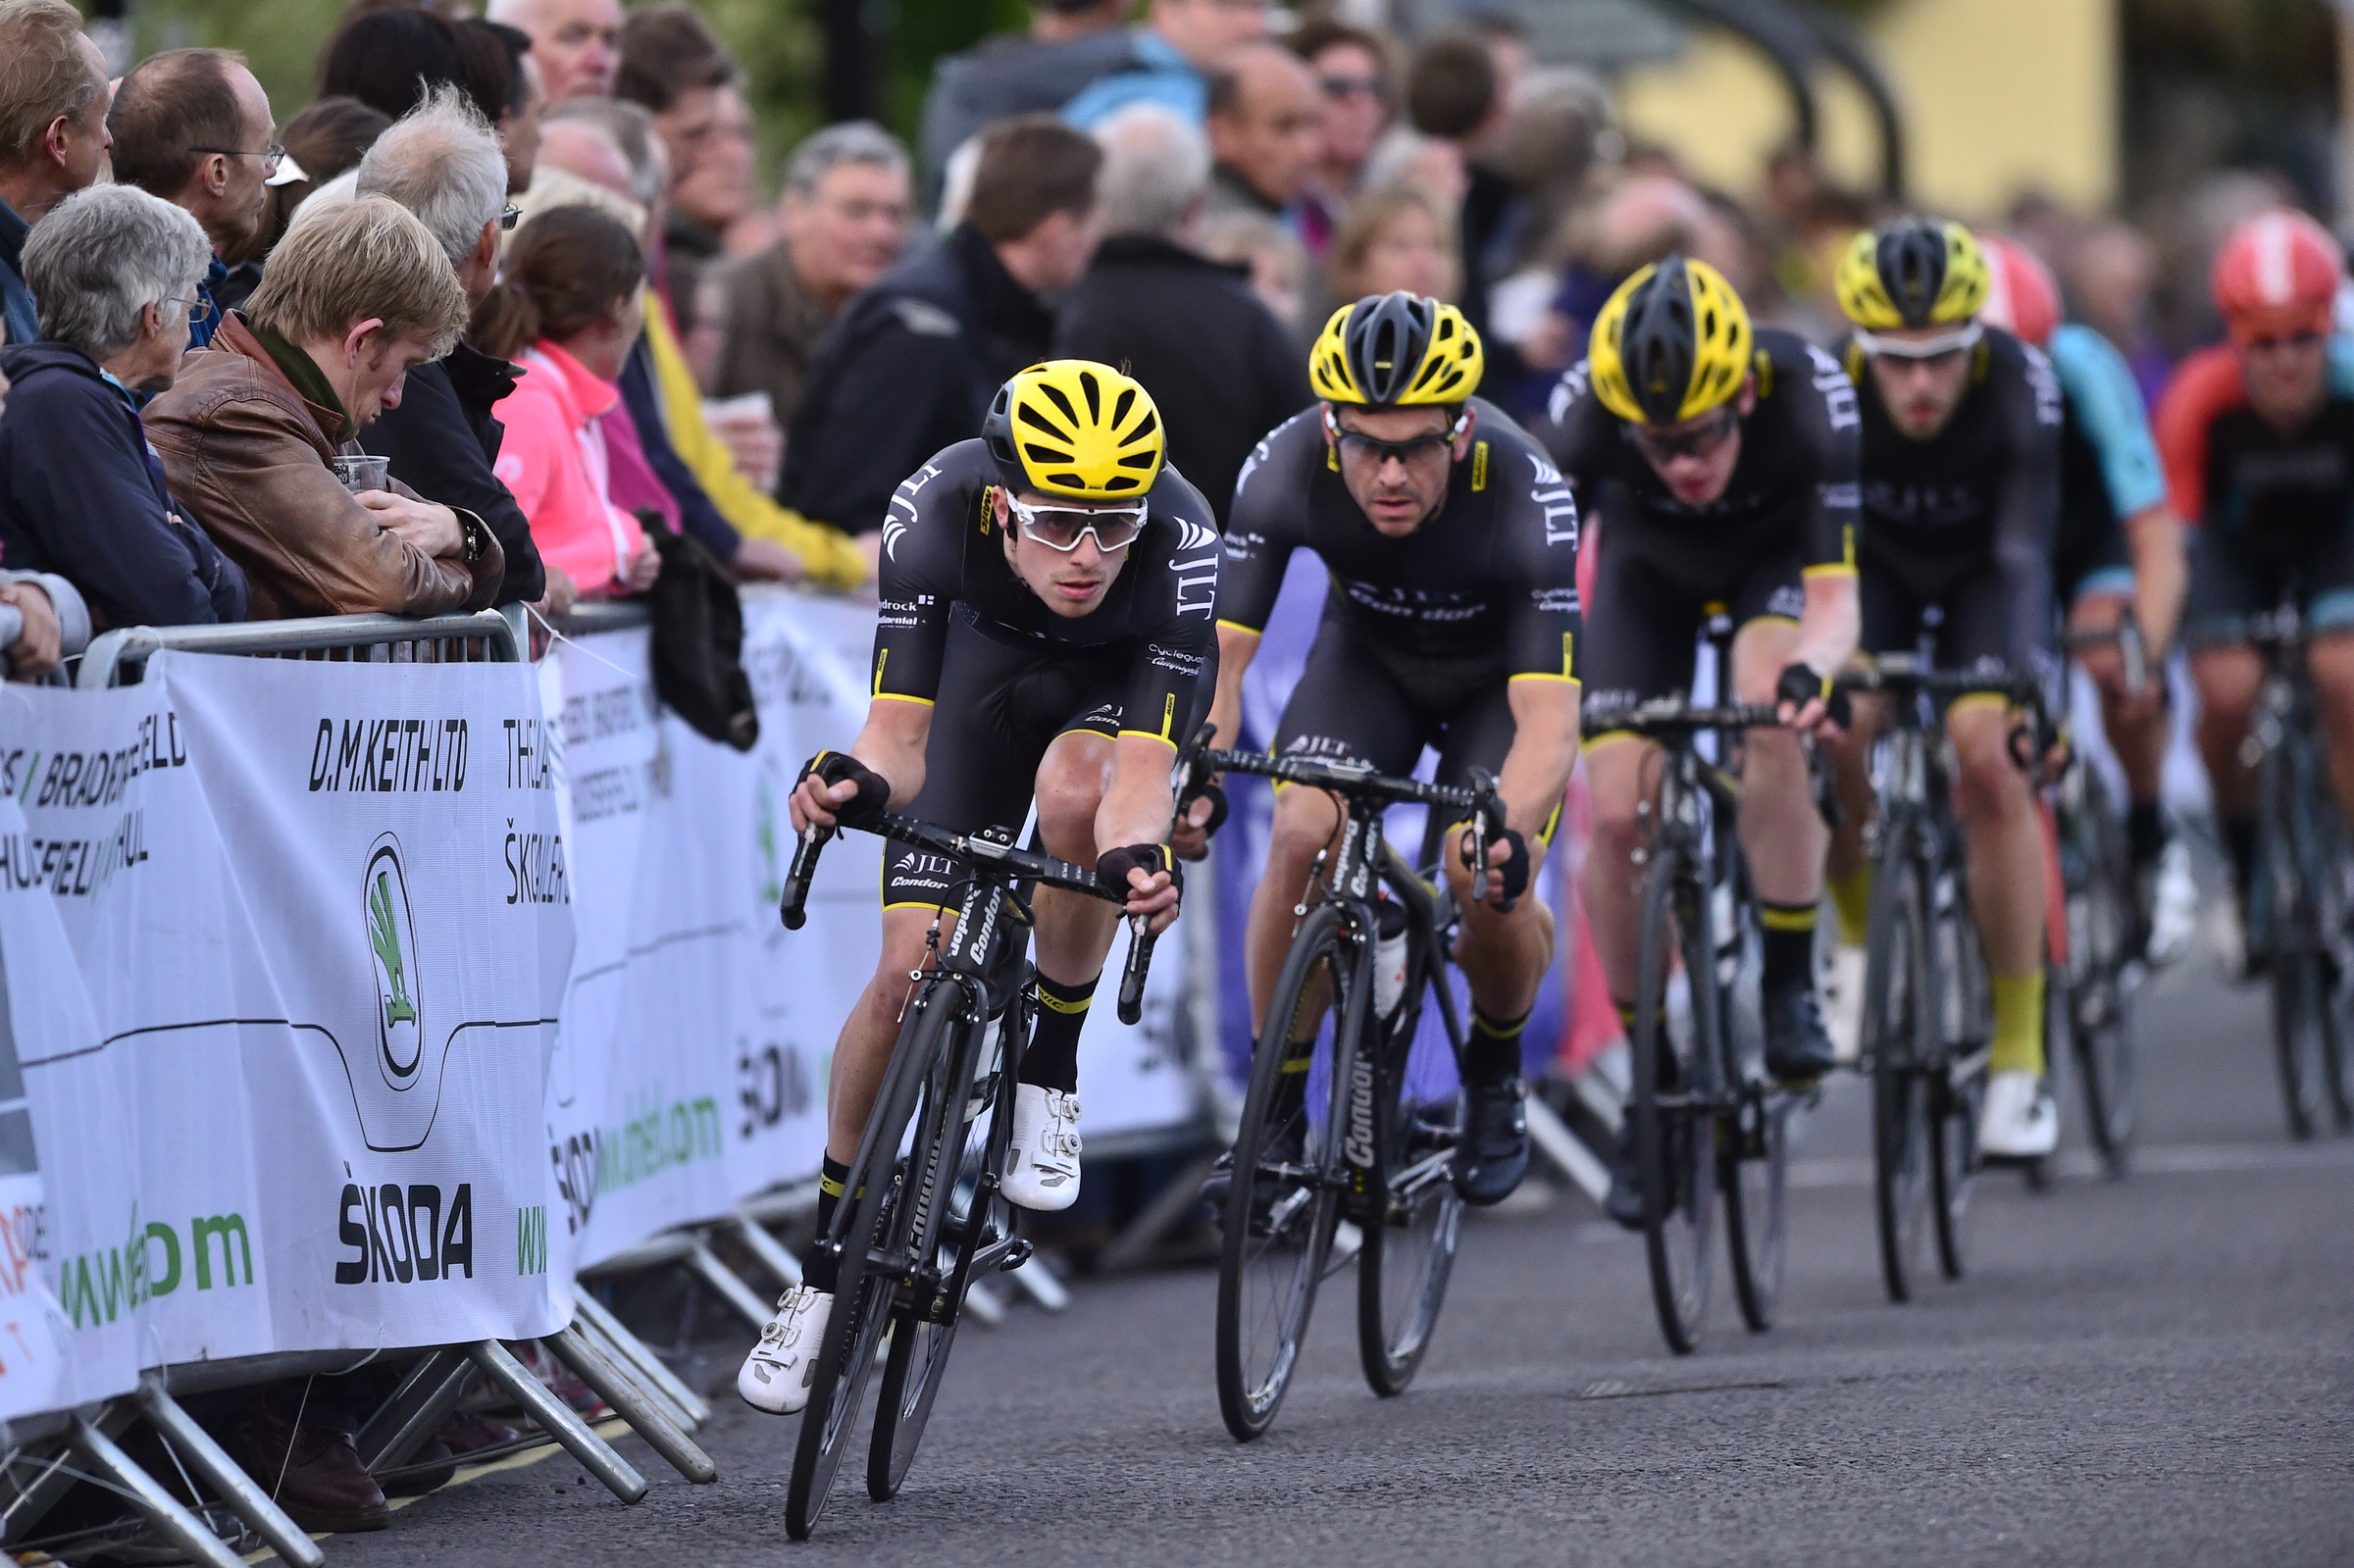 JLT Condor lead the bunch